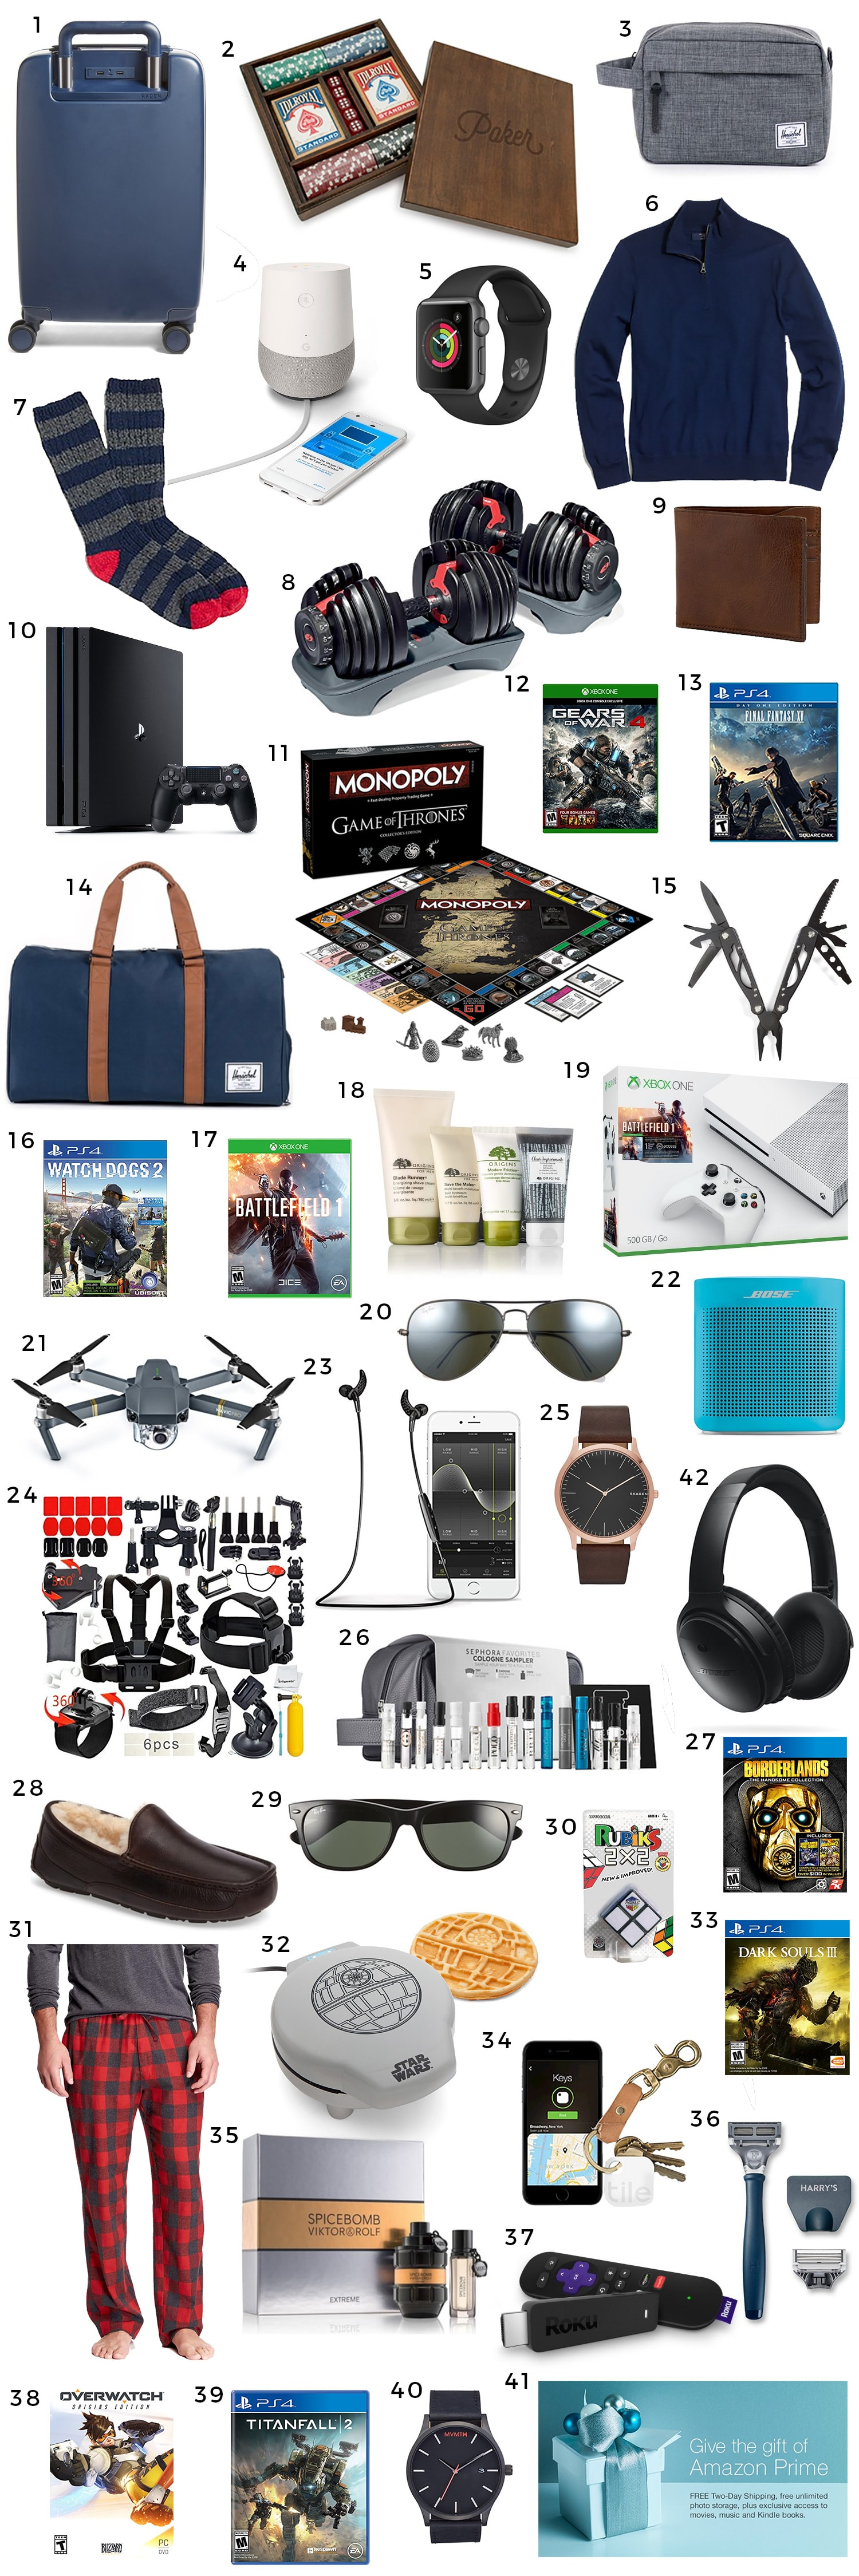 f30d9fd49ee8b The Best Christmas Gift Ideas for Men